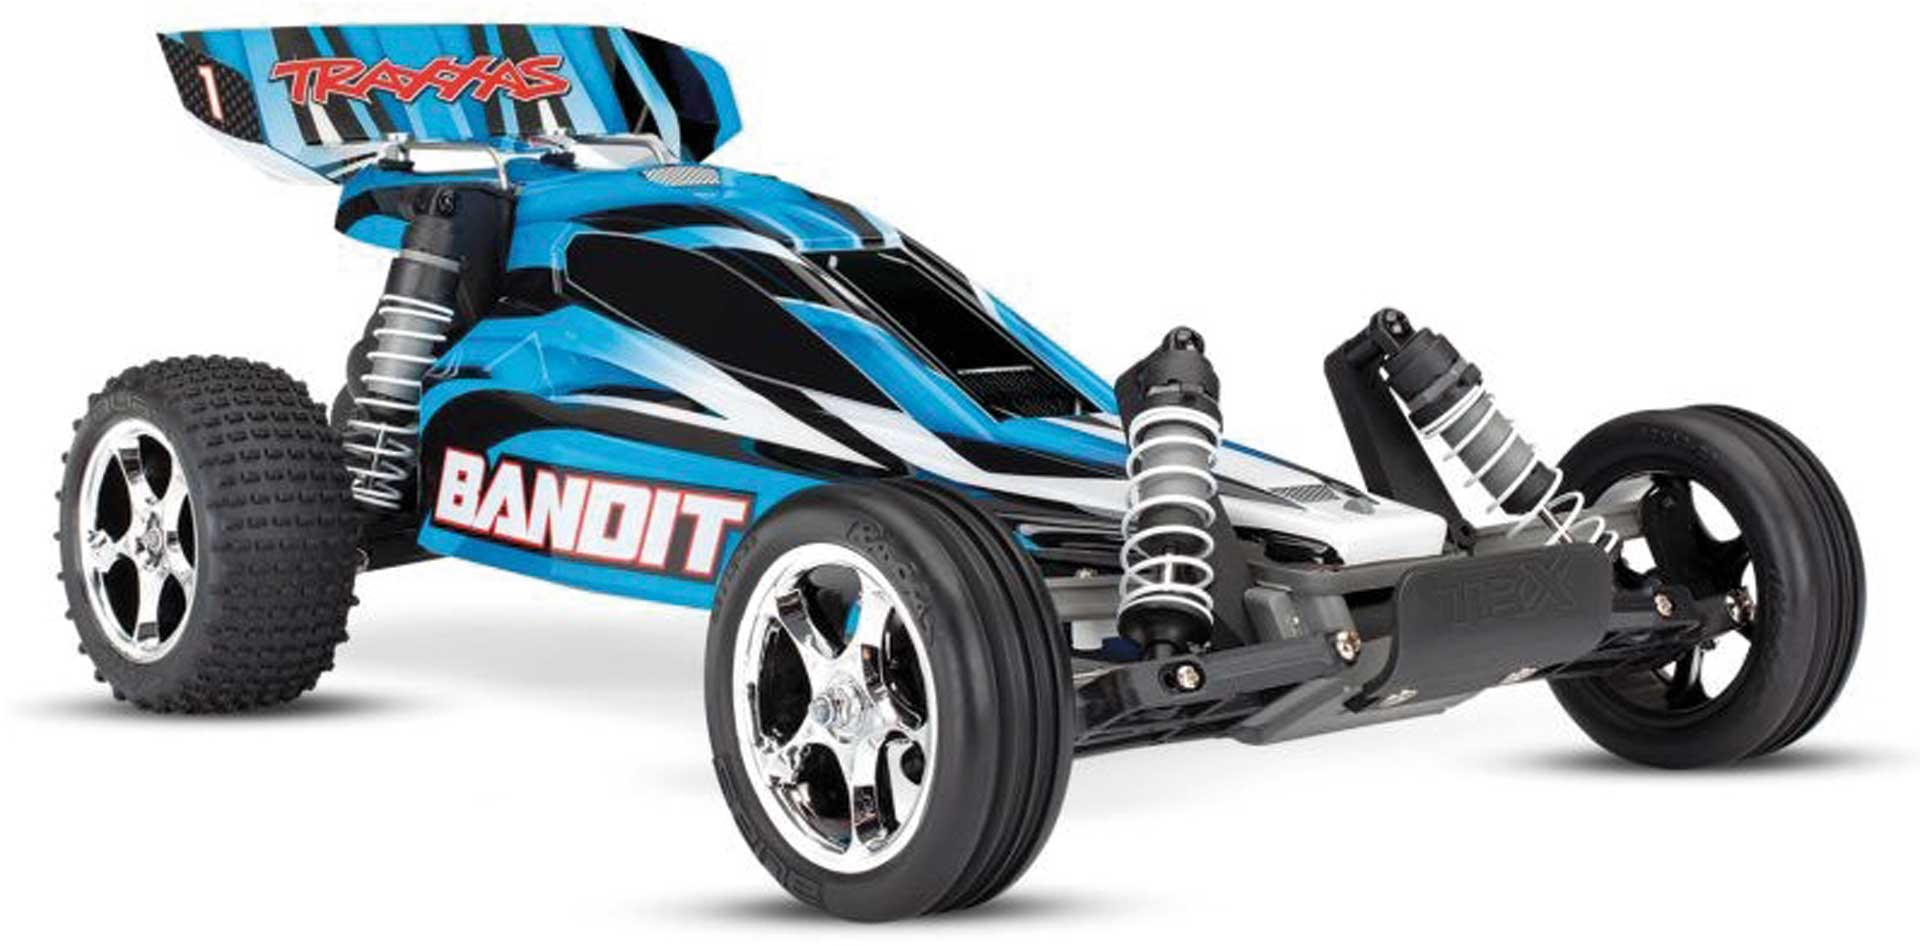 Traxxas BANDIT BLAU BUGGY RTR OHNE AKKU/LADER 1/10 2WD BUGGY BRUSHED